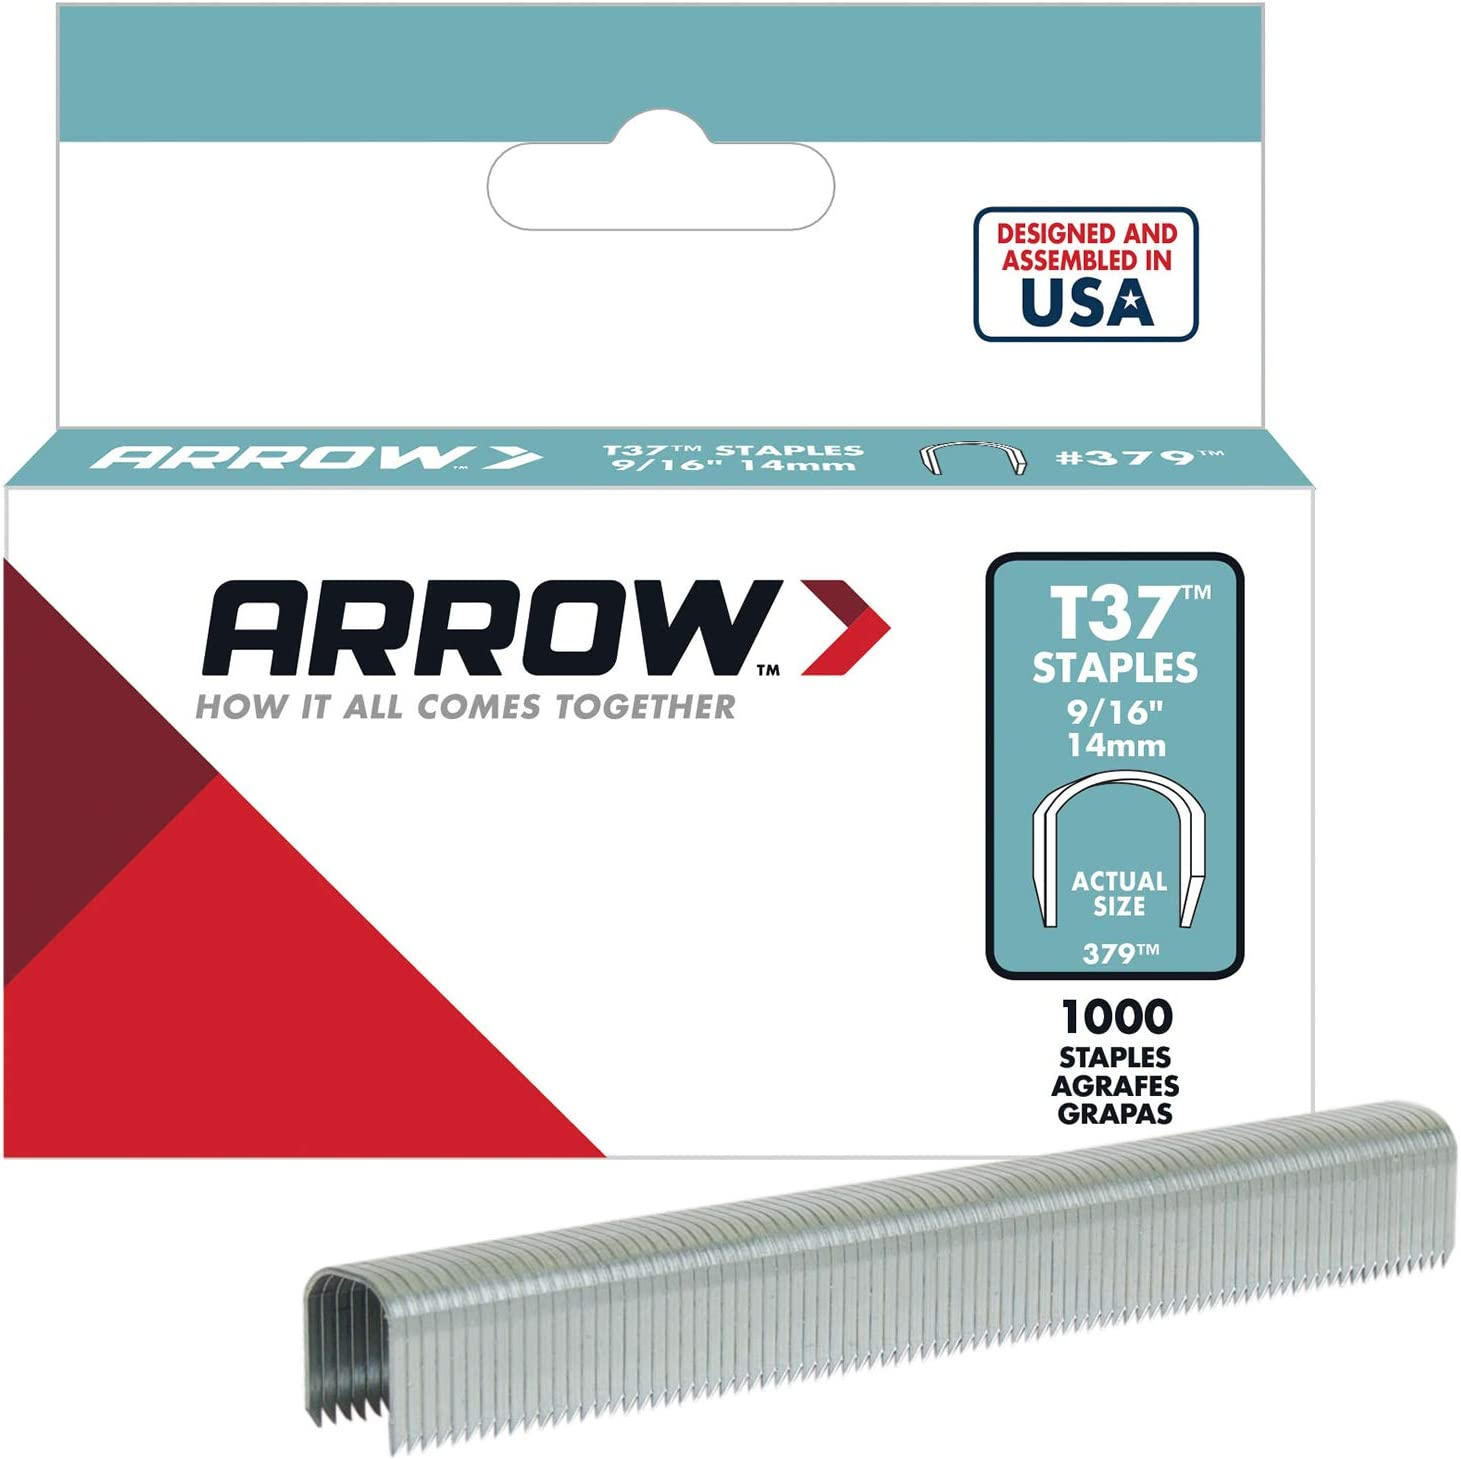 T37 9//16-inch Staples 3,000 Arrow T37 Round Crown Staple Wire//Cable Tacker,